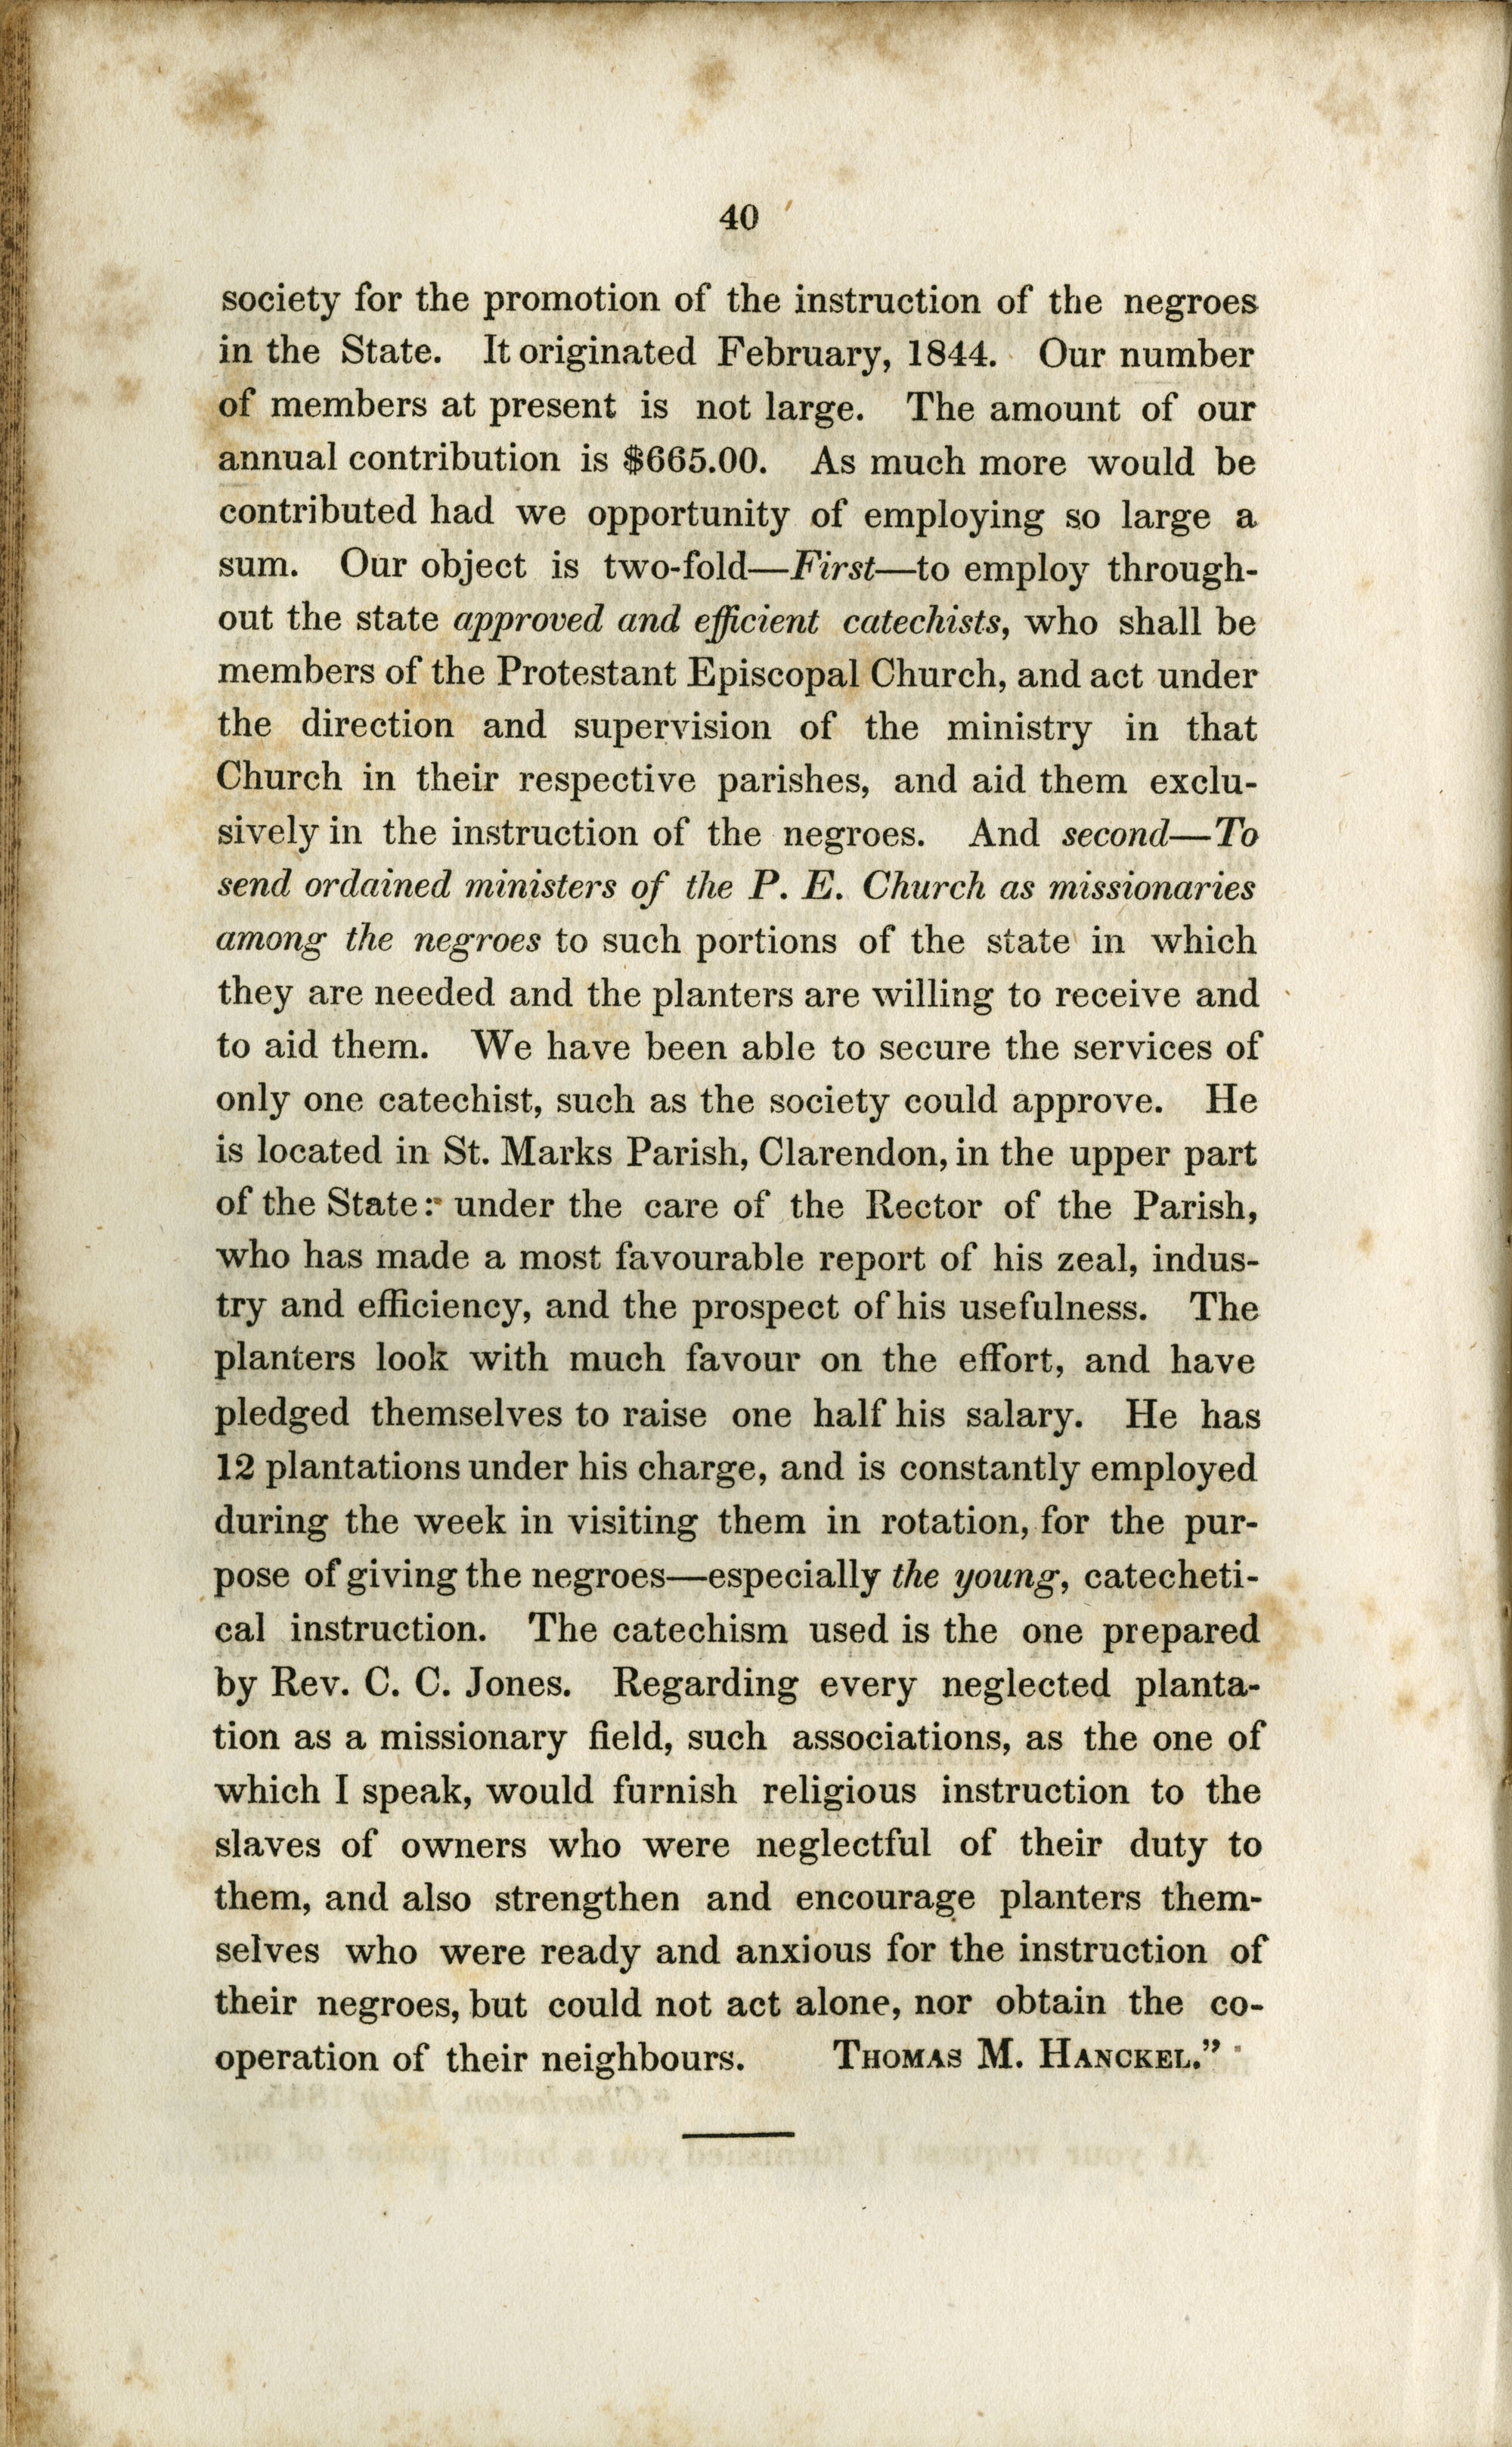 Report of the Committee, Page 40